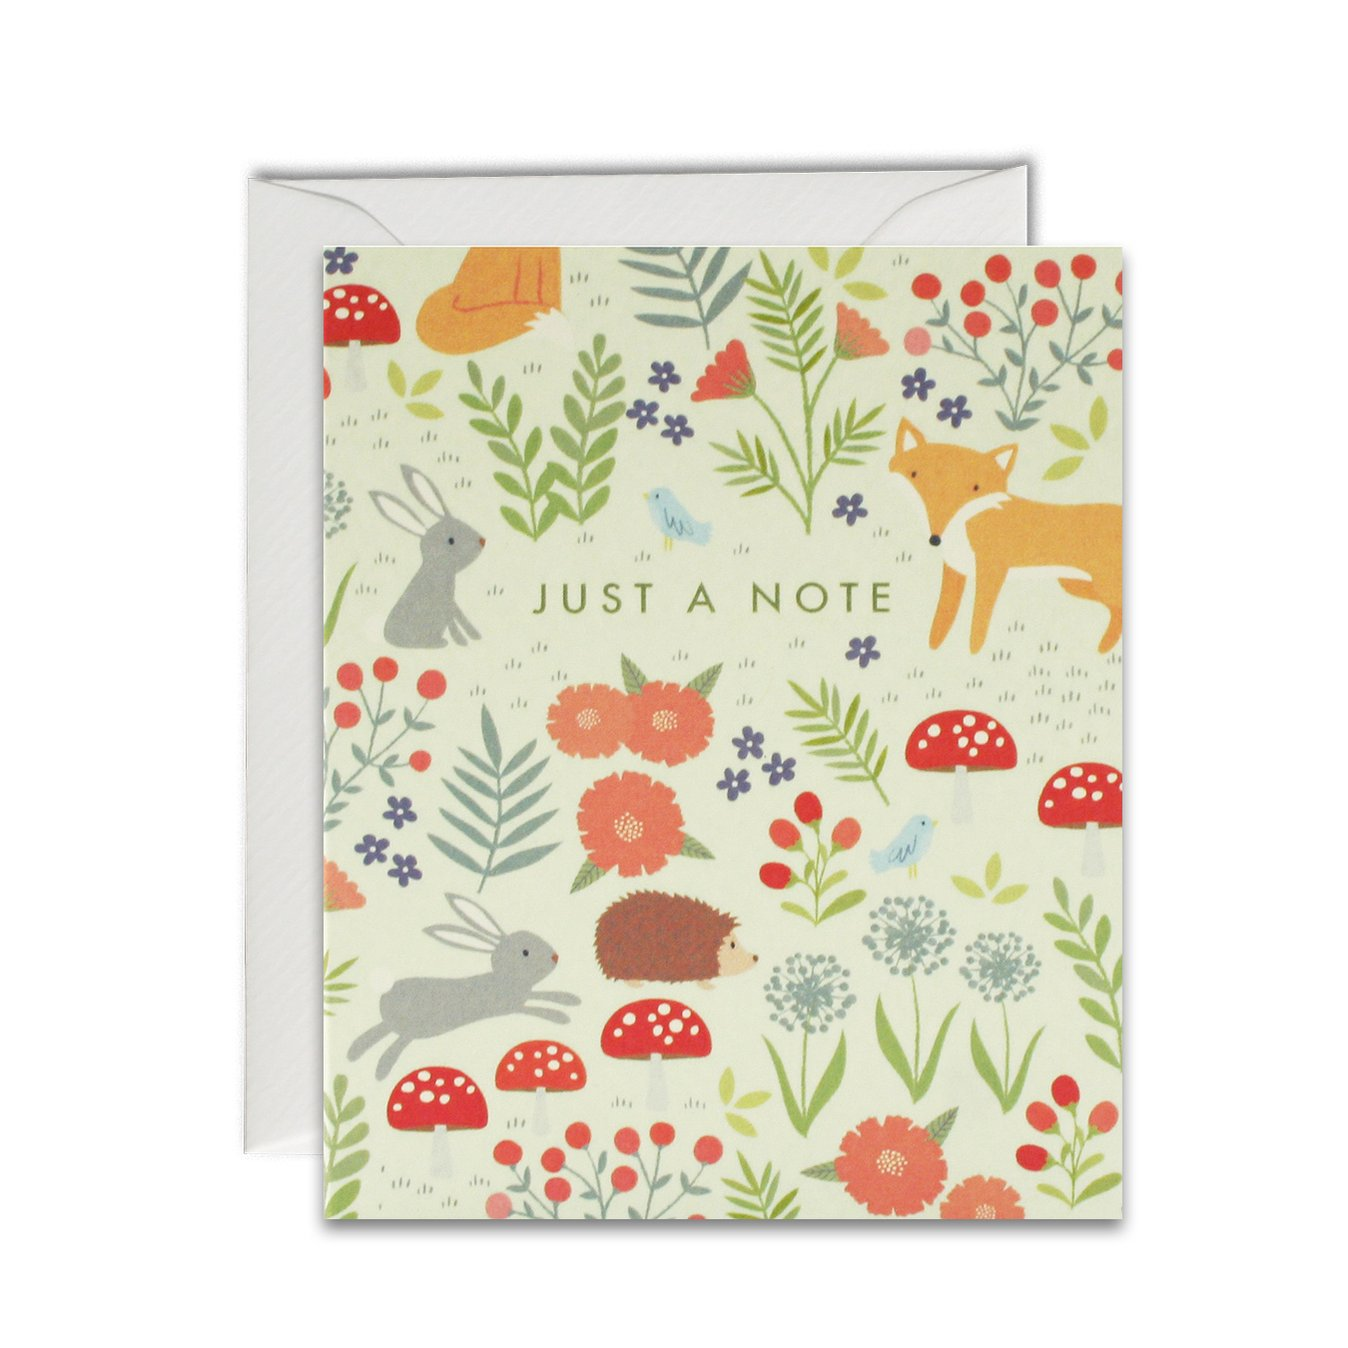 buypretty stationery, notebooks, writing sets, scrapbooks, pencil cases at karenza paperie